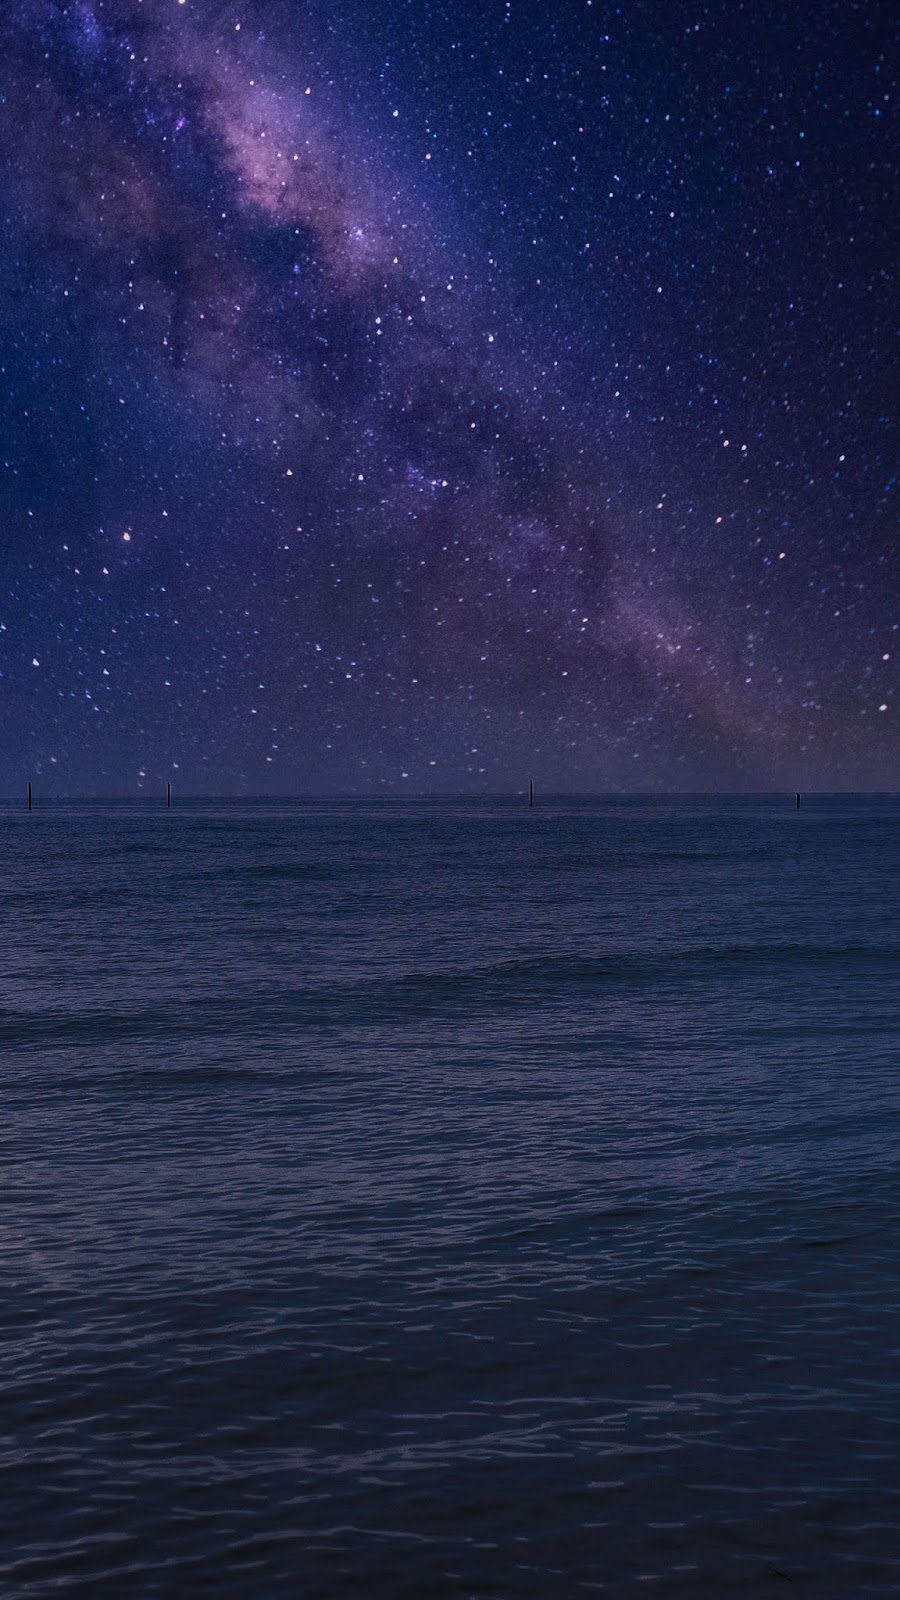 Milky way in the beach